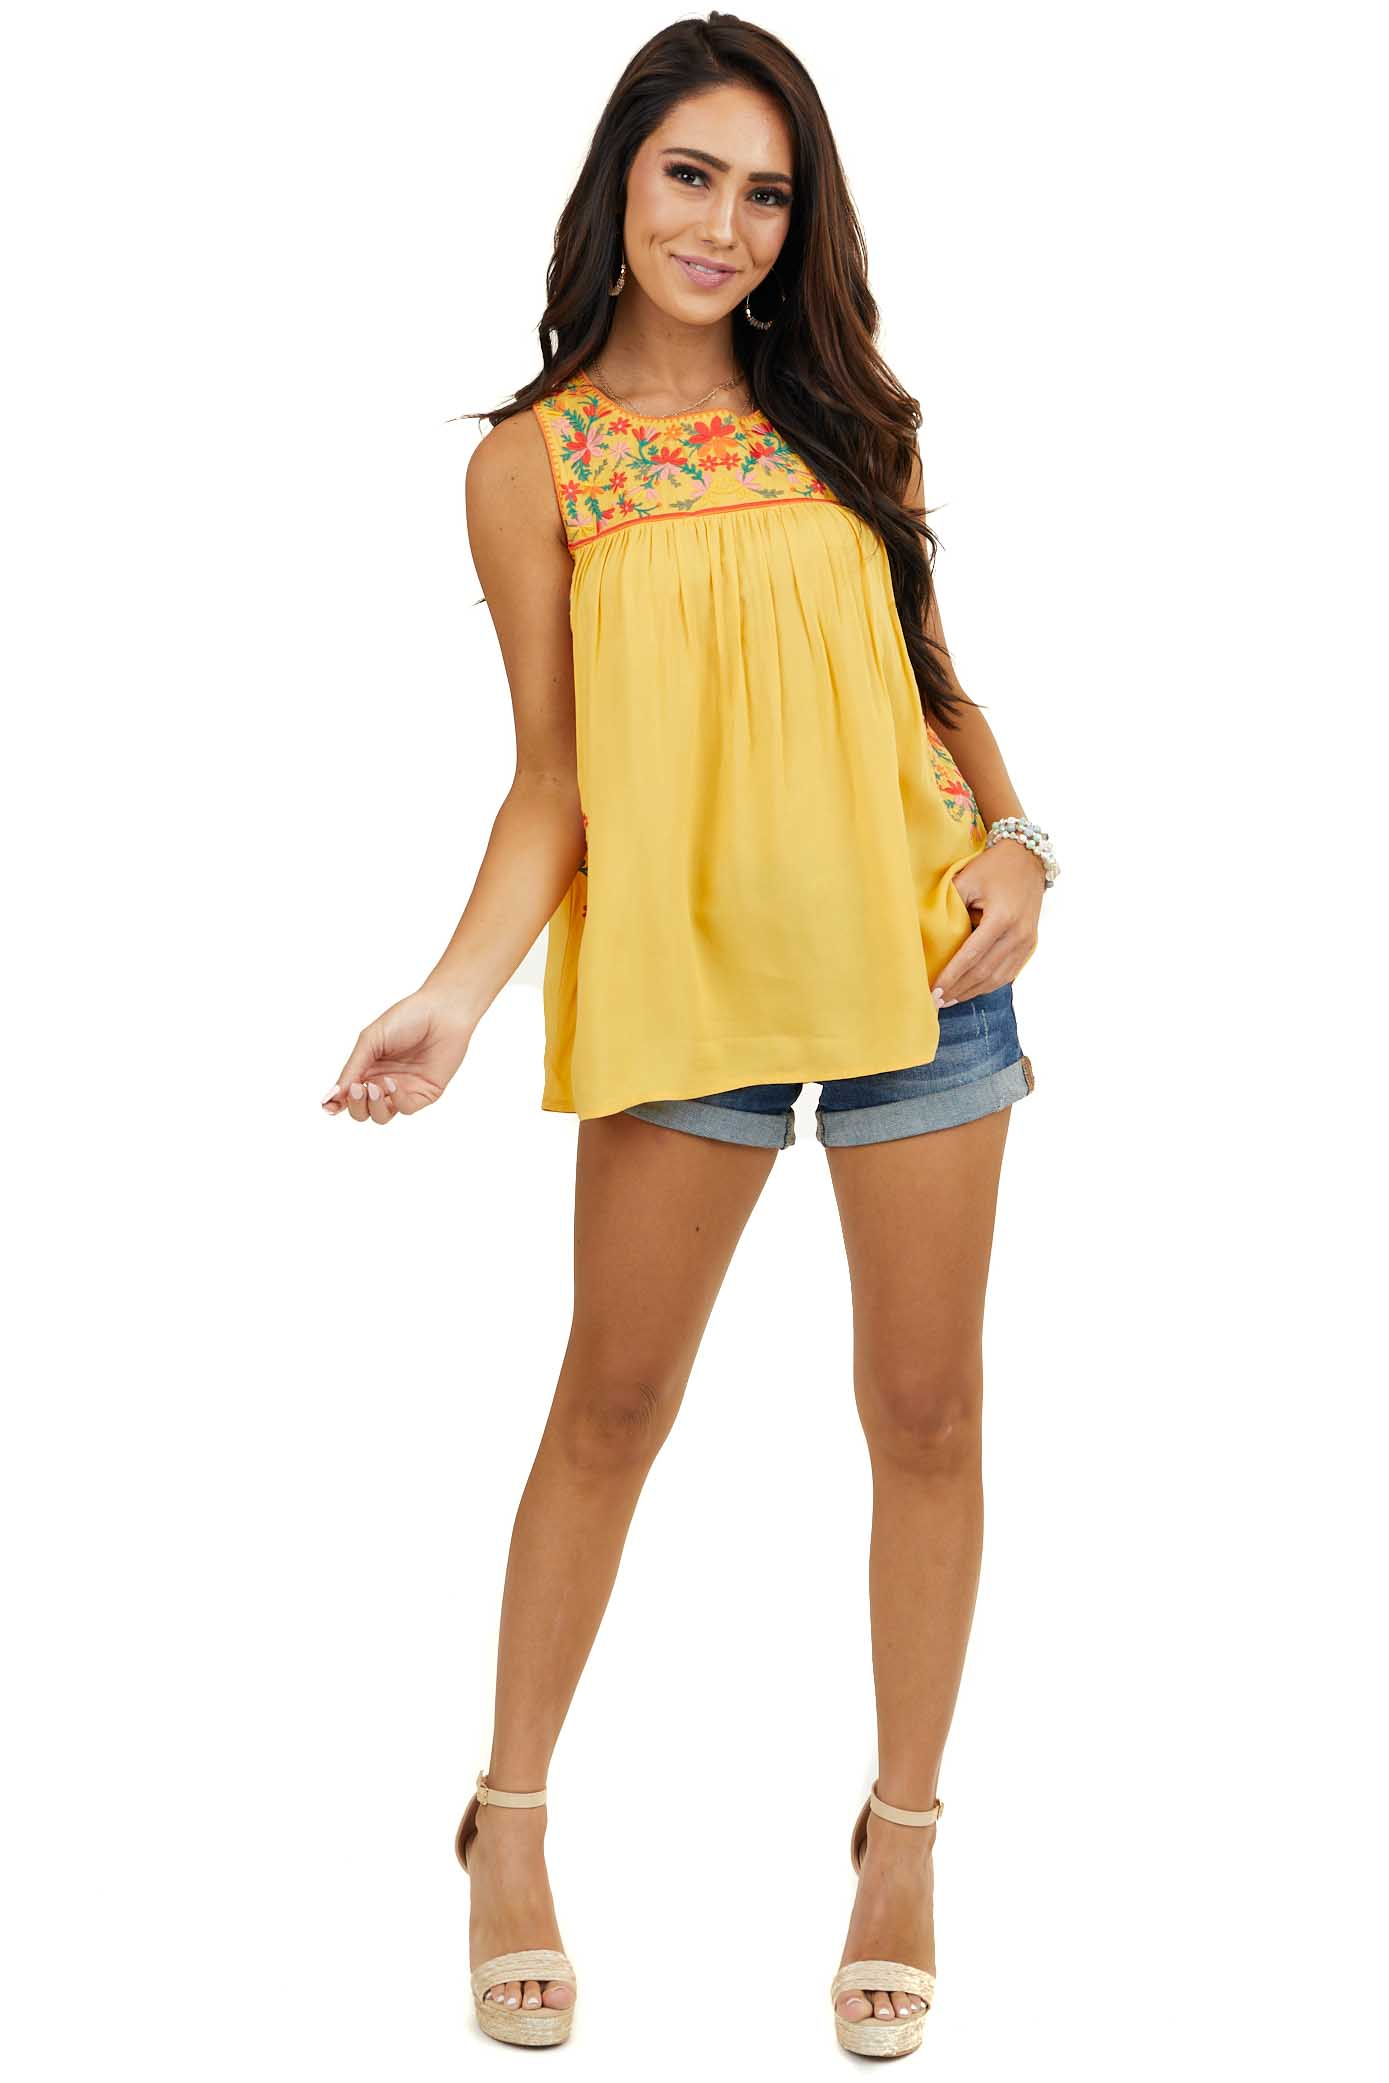 Amber Woven Tank Top with Floral Embroidery Details